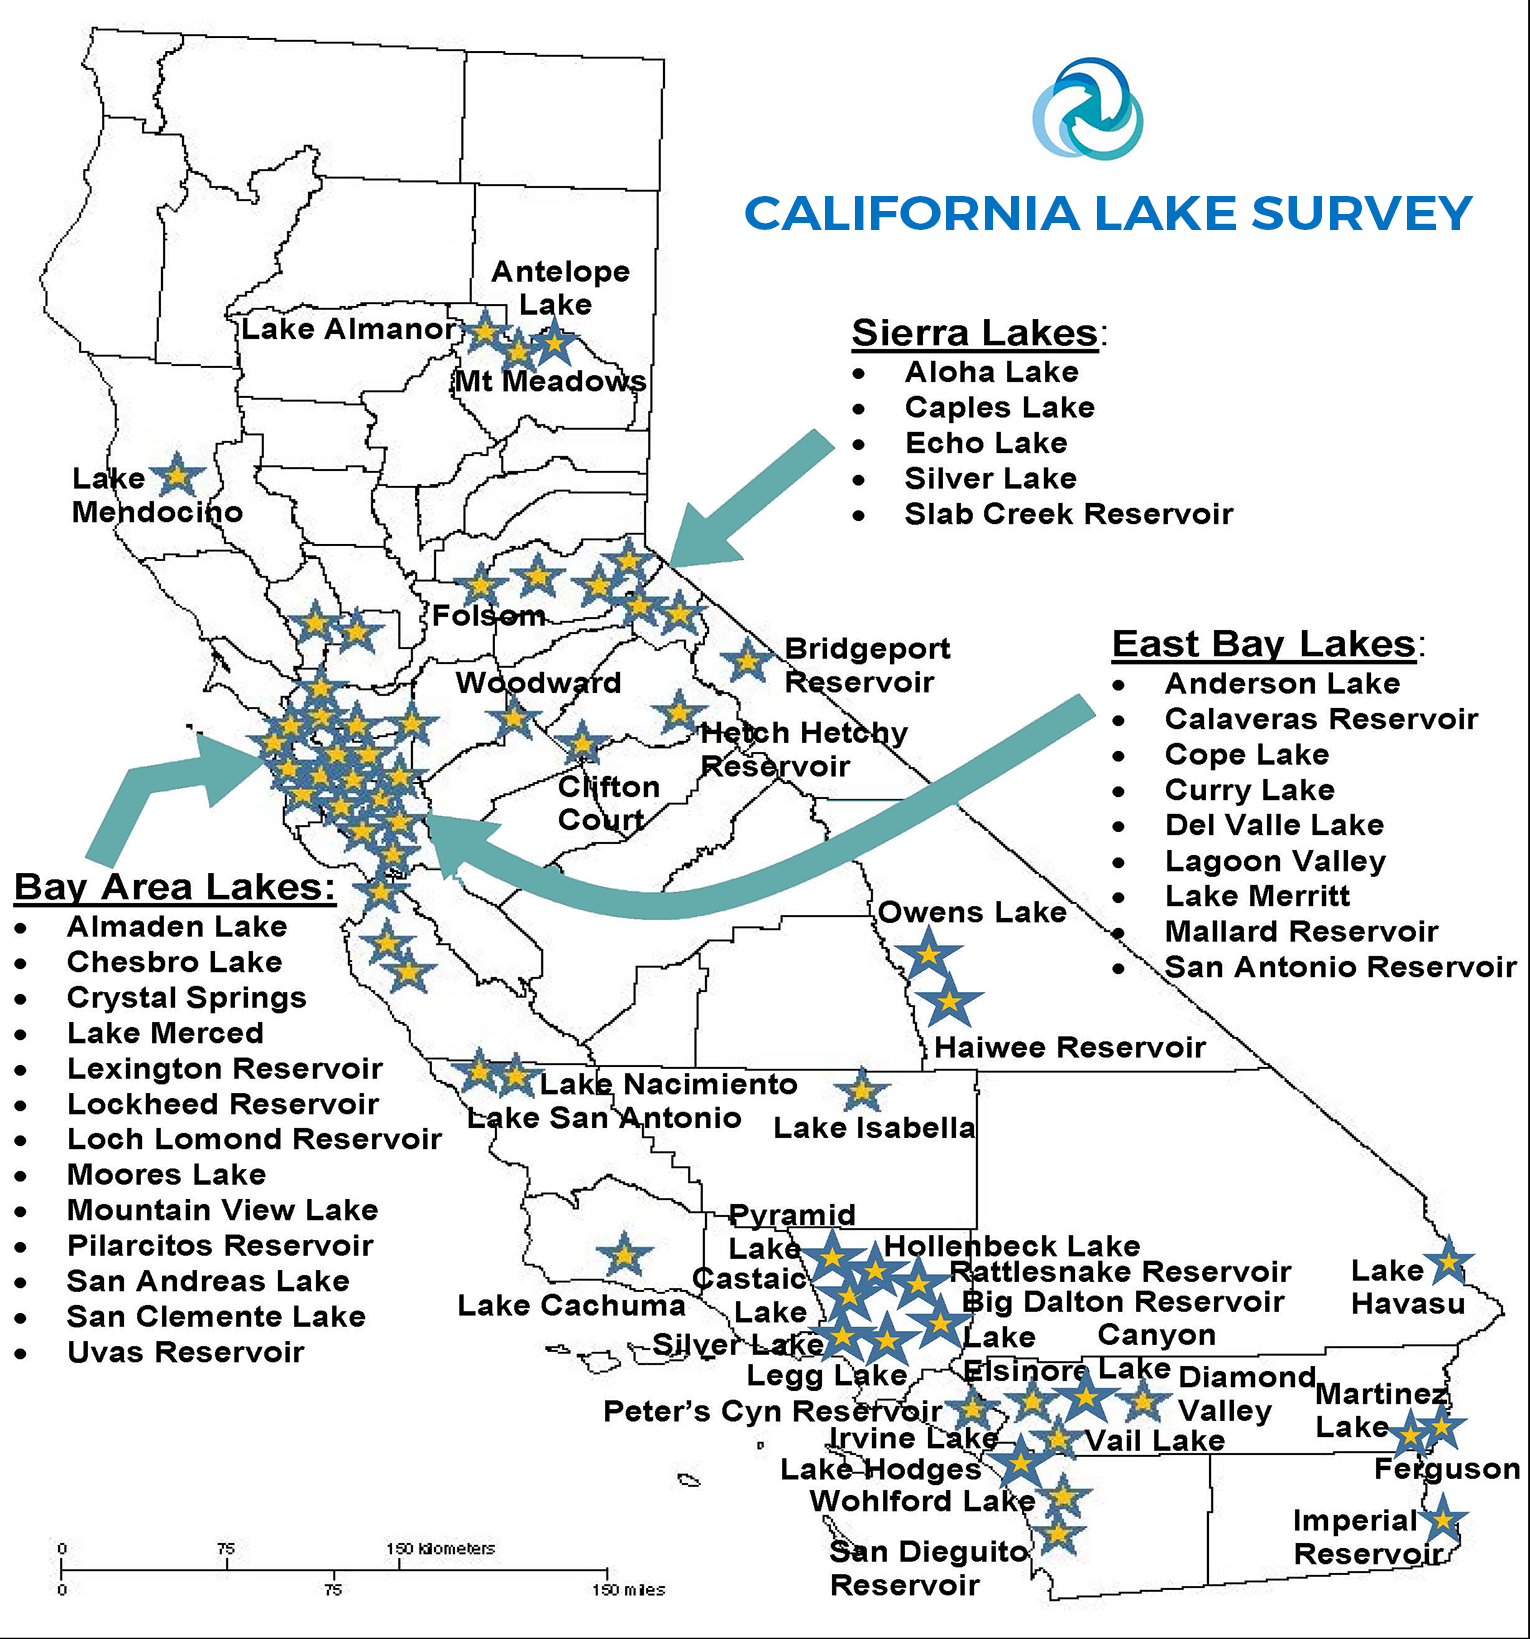 Map Of California Lakes.Will Dredging Help Restore California S Lakes And Reservoirs Mbc